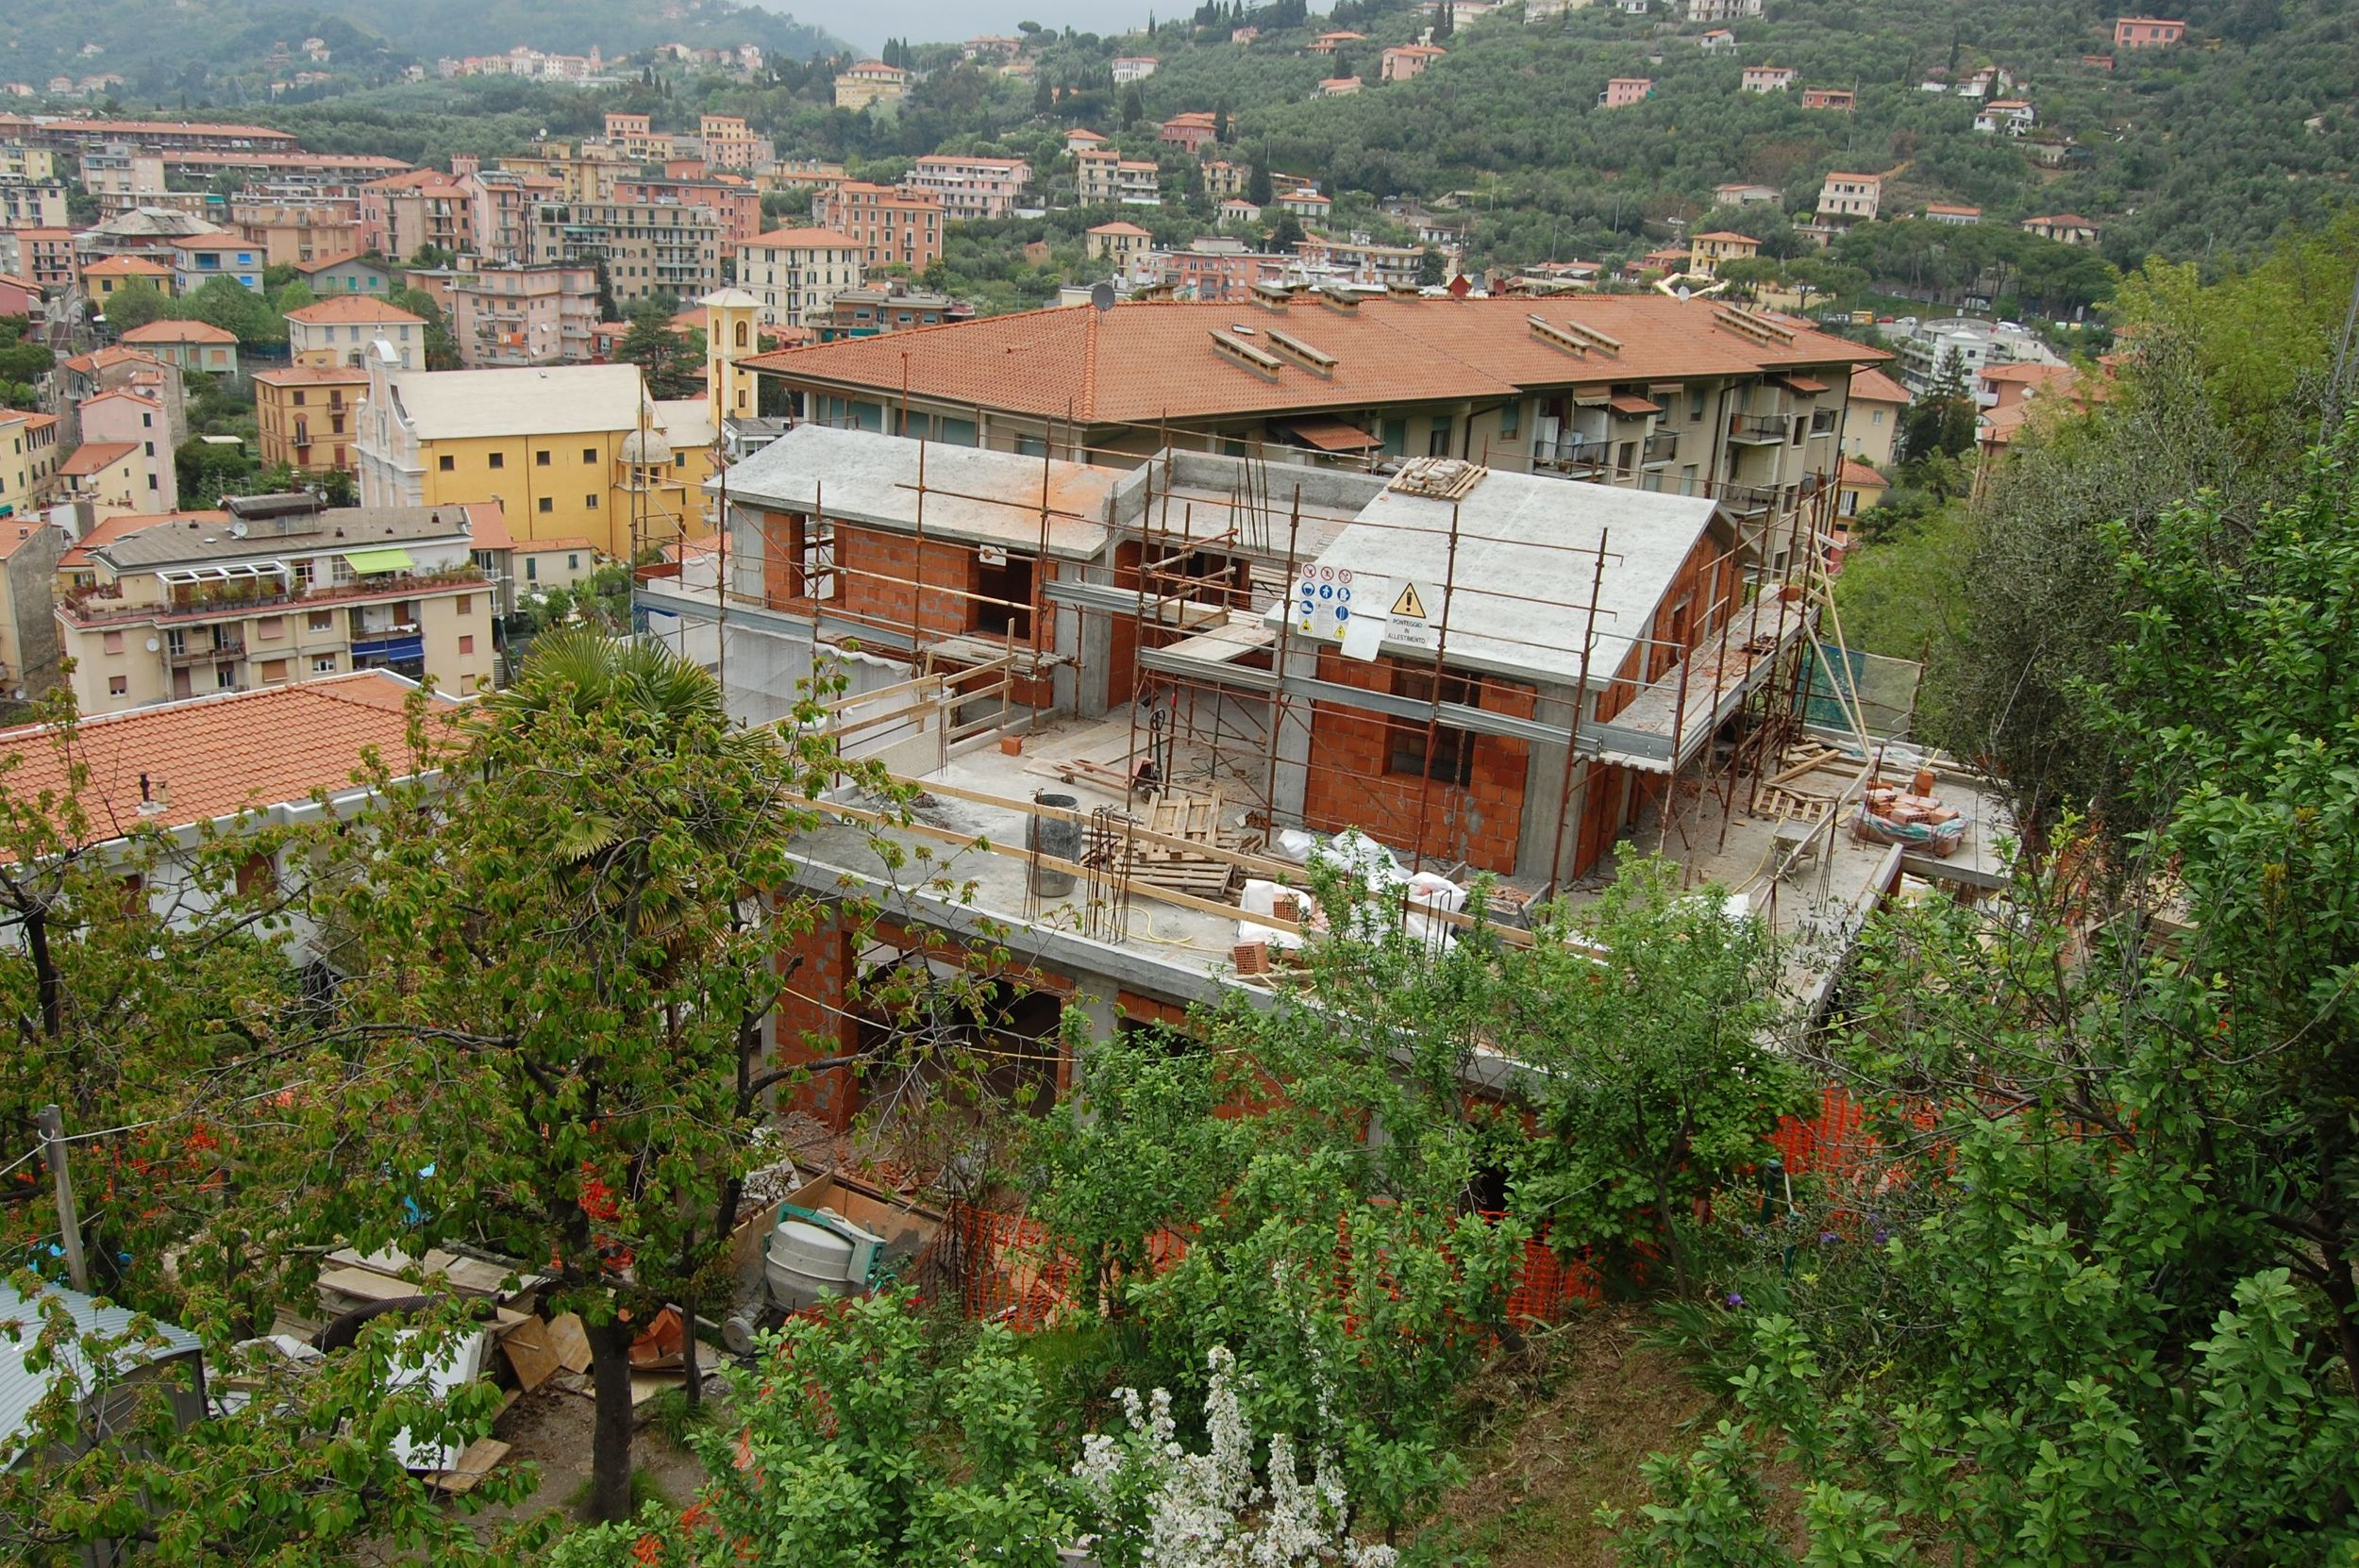 Exterior of Villa Giulia under construction 26 April 2015